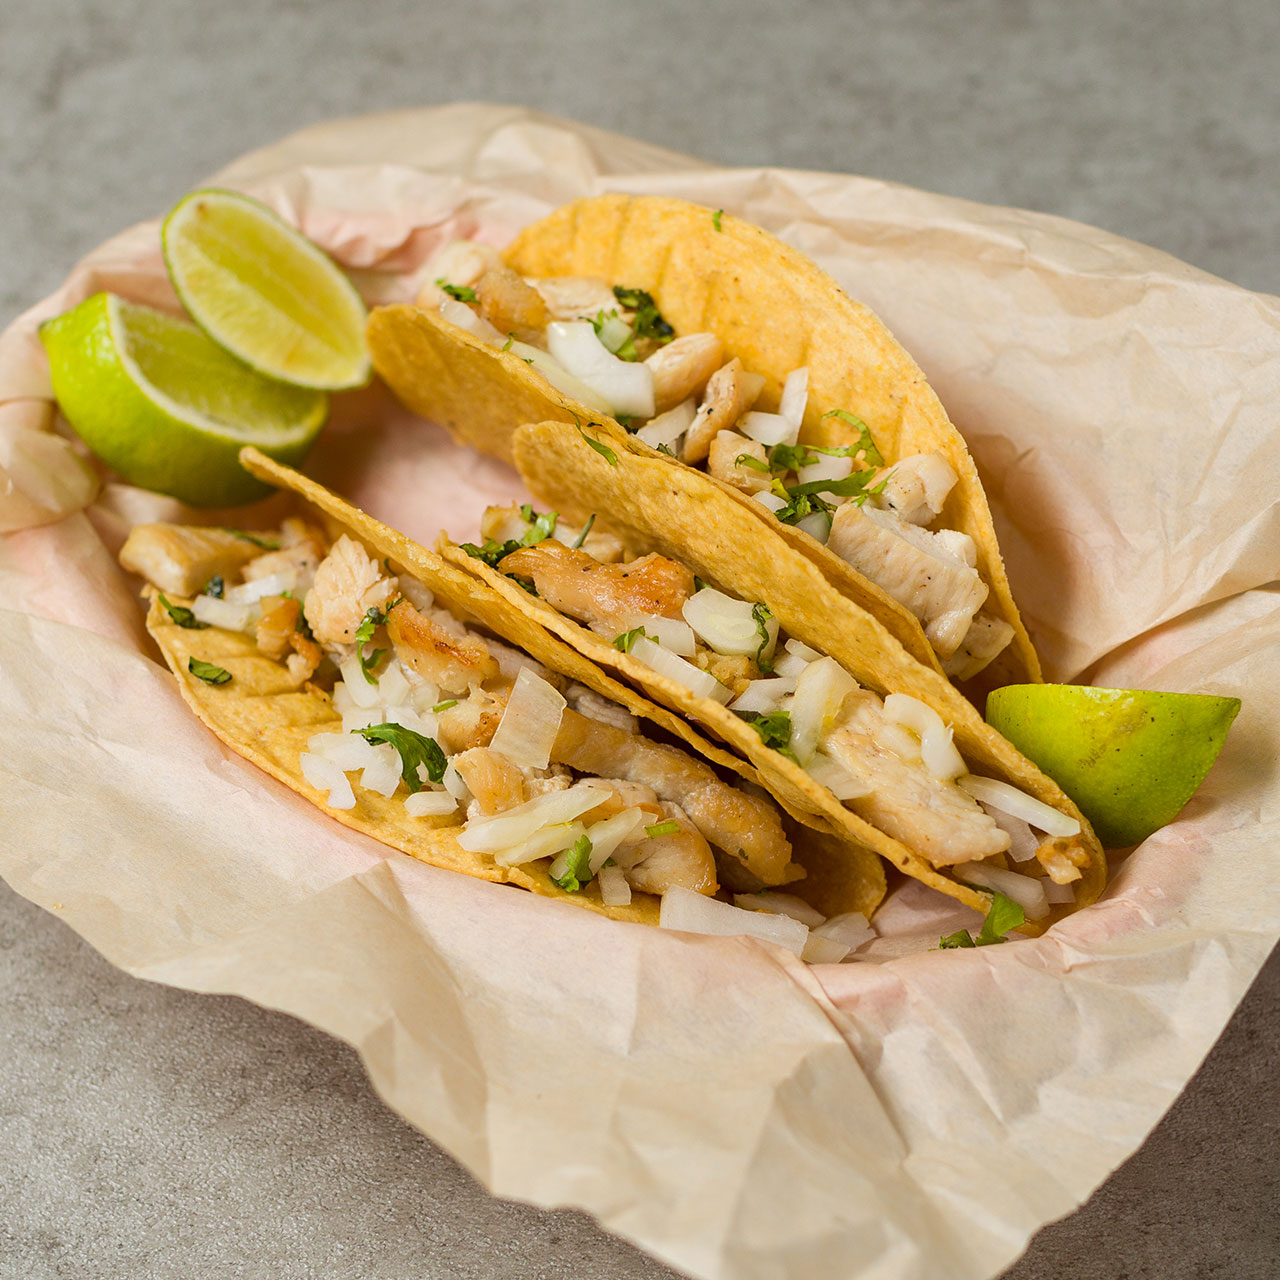 3.	Chicken Tacos from Super Tacos & Bakery:{ }Pollo guisado. Corn tortillas, onions, cilantro and limes.{ }(Image: Courtesy Grubhub)